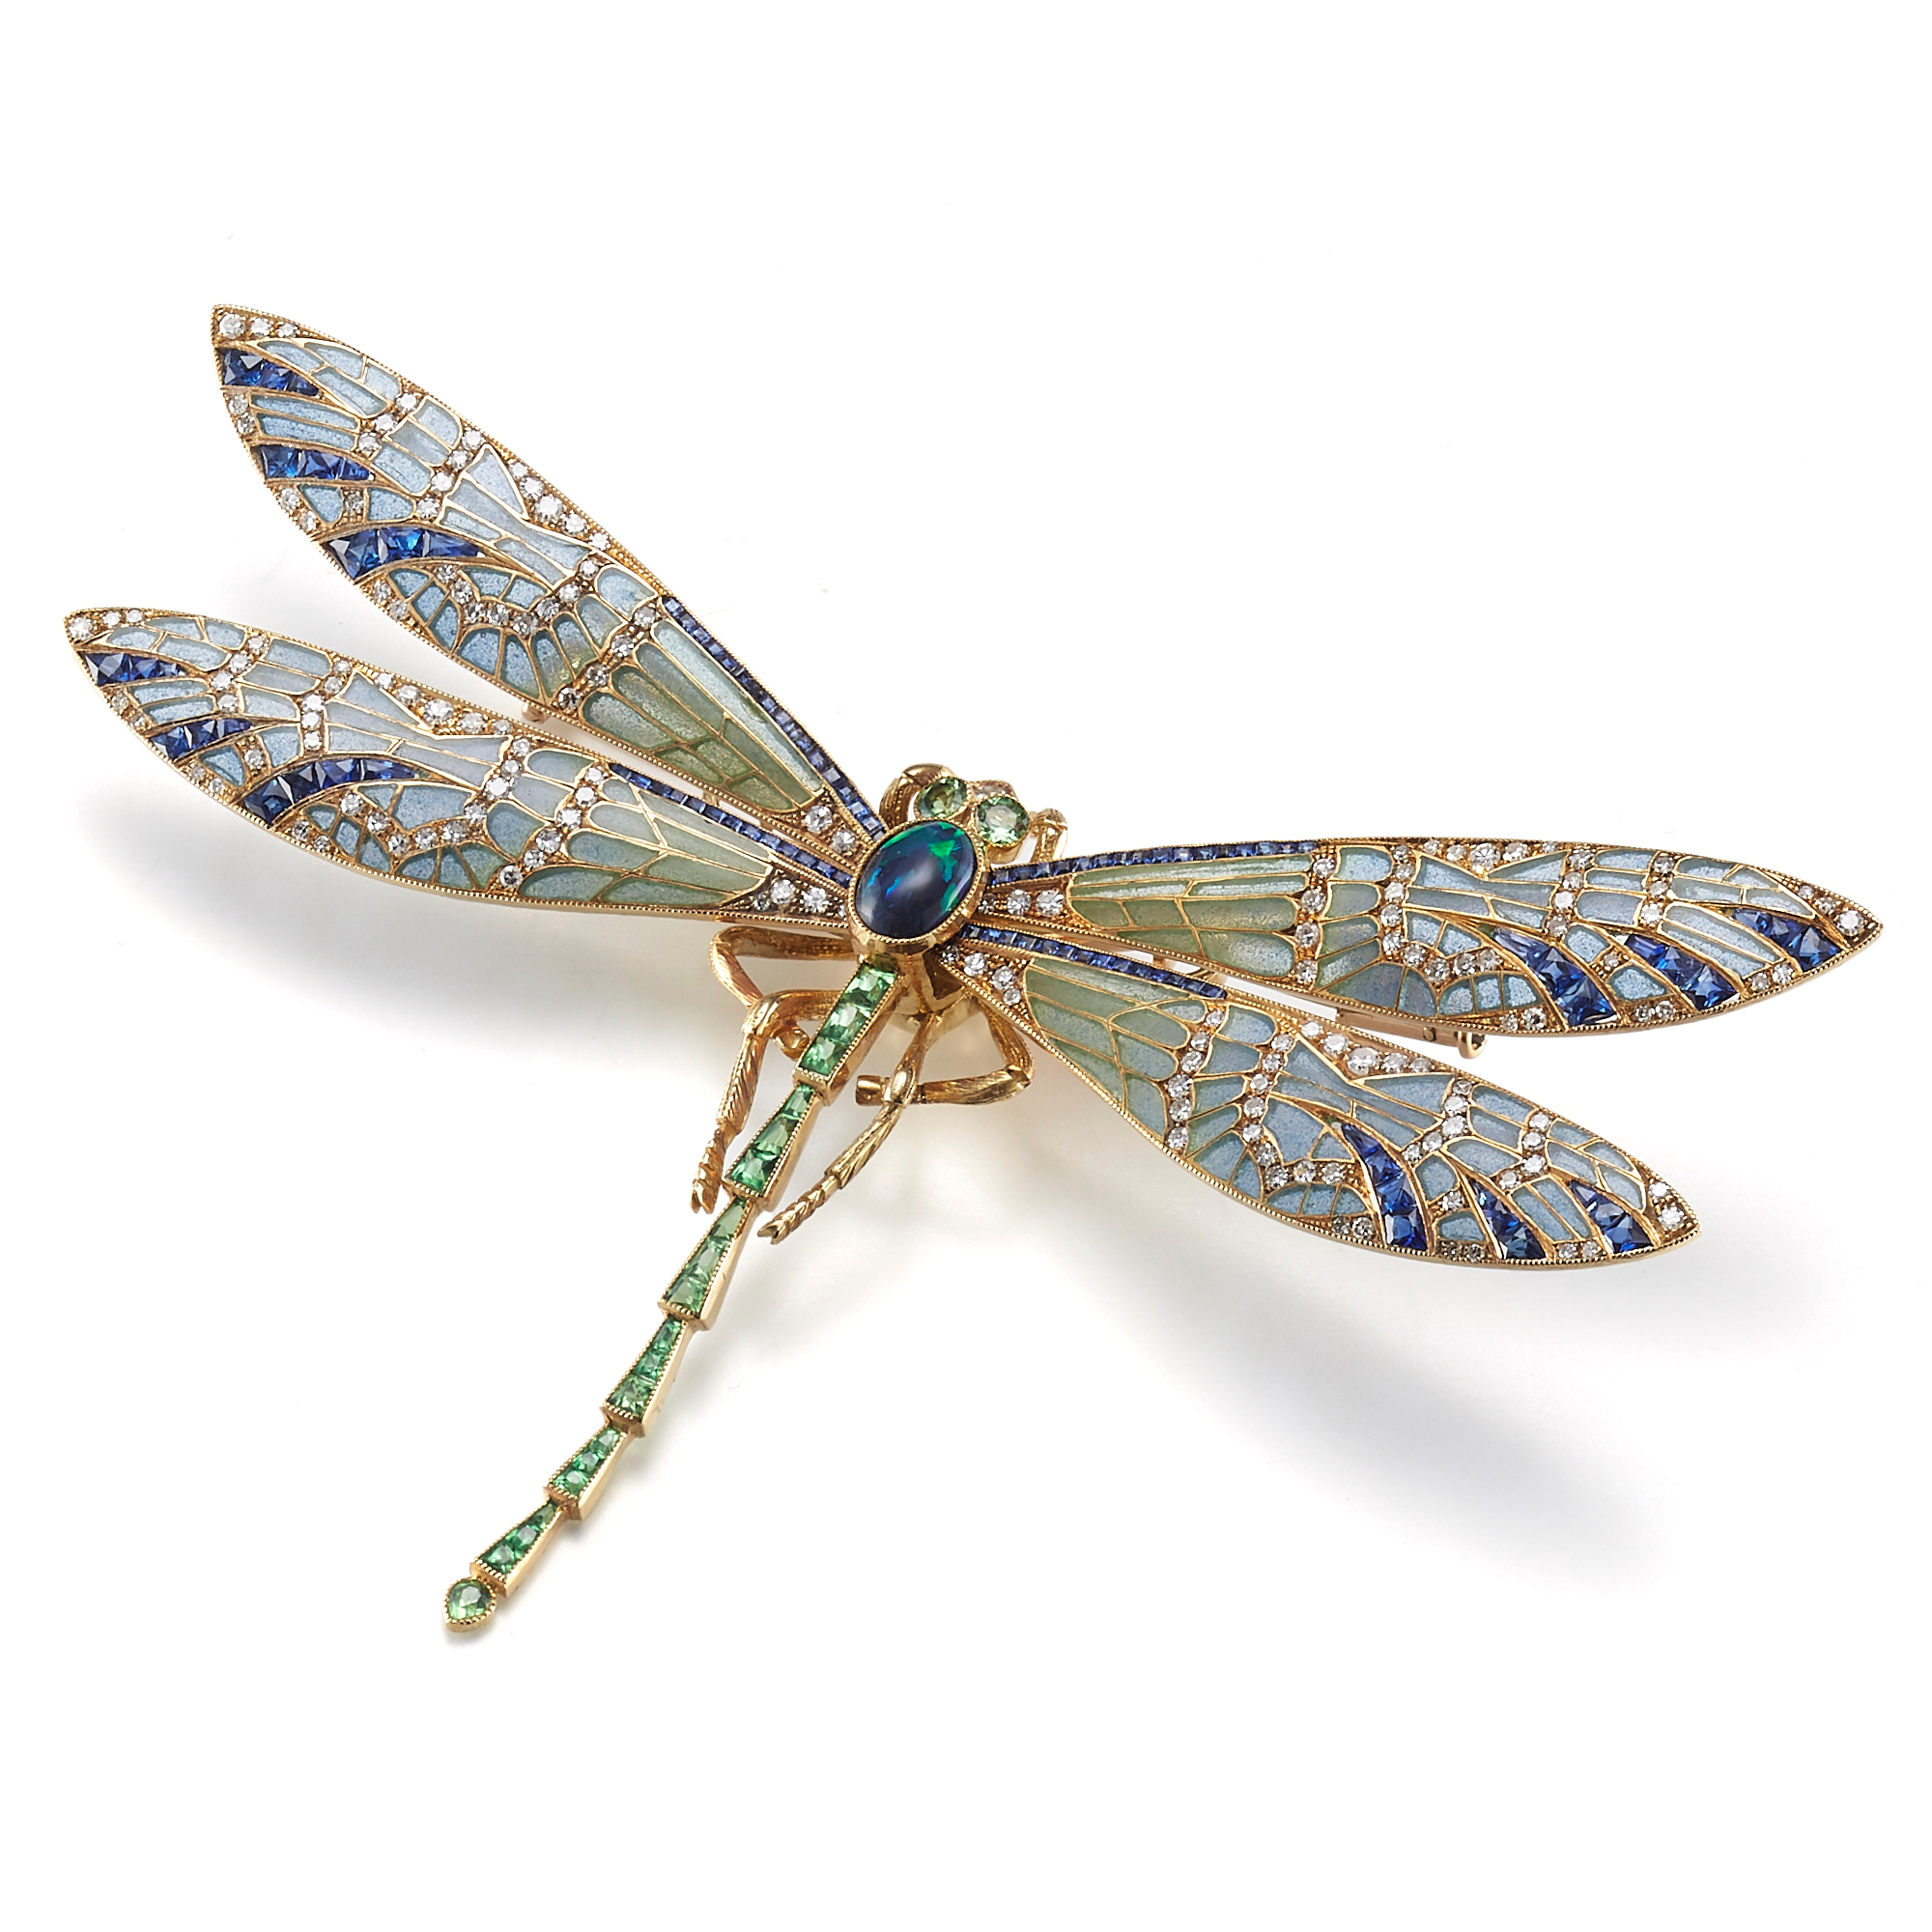 Cicada Plique-a-Jour with Diamonds, Black Opal & Tsavorite Dragonfly Brooch